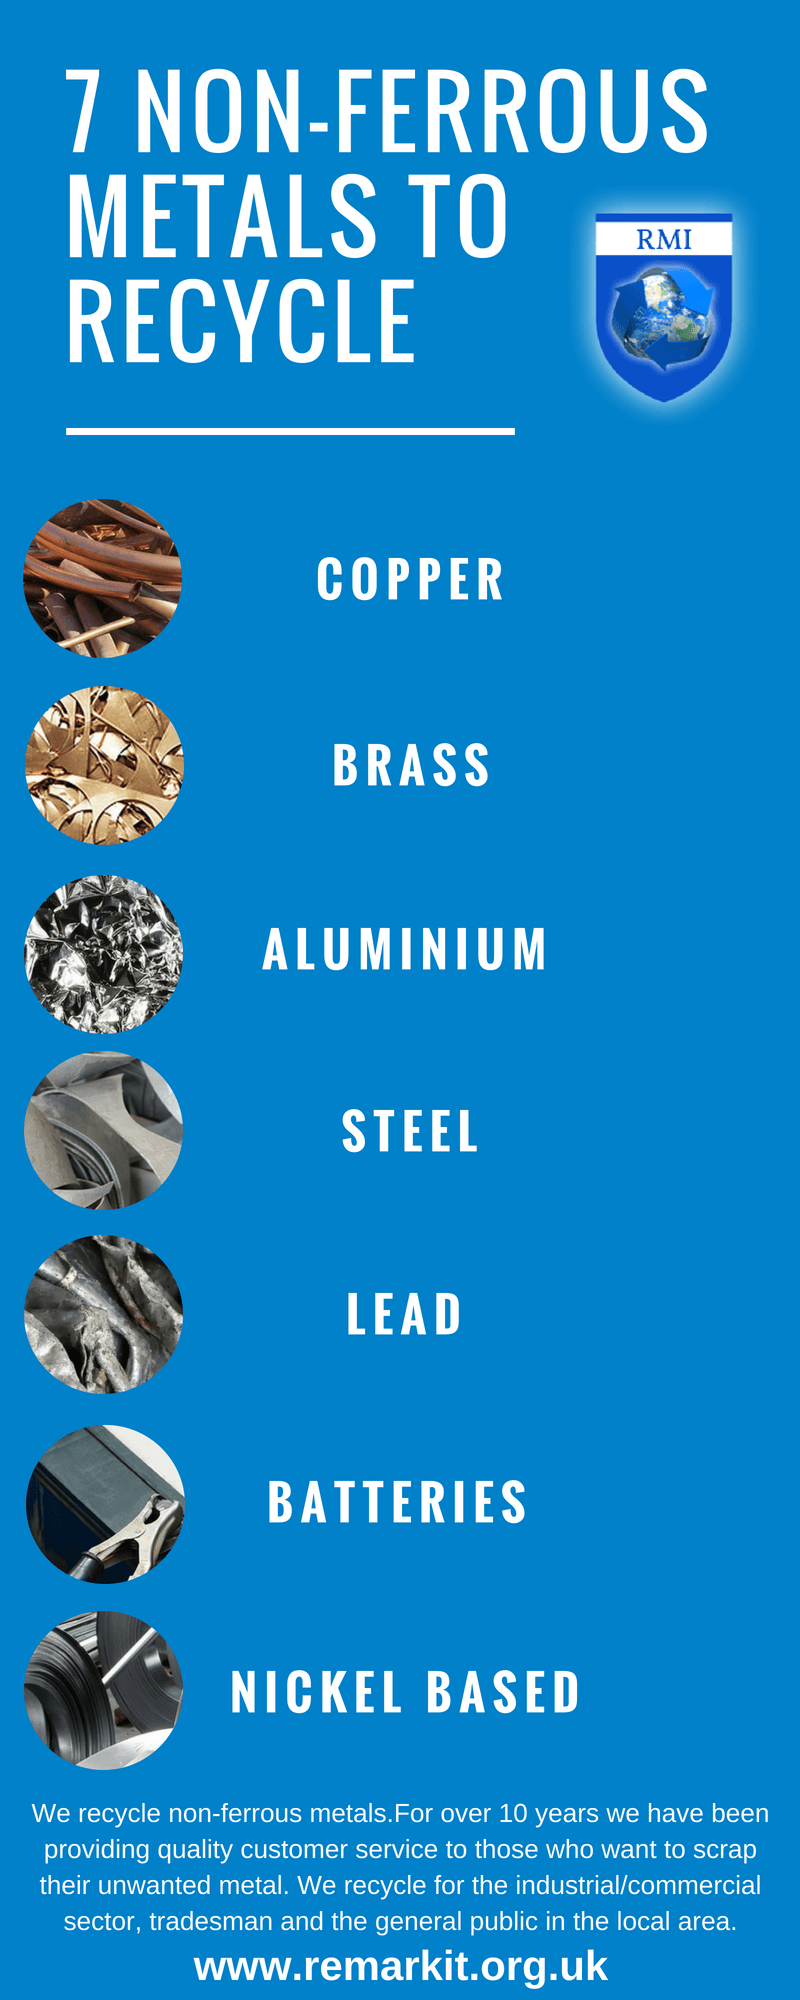 7 Non-ferrous Metals you can Recycle